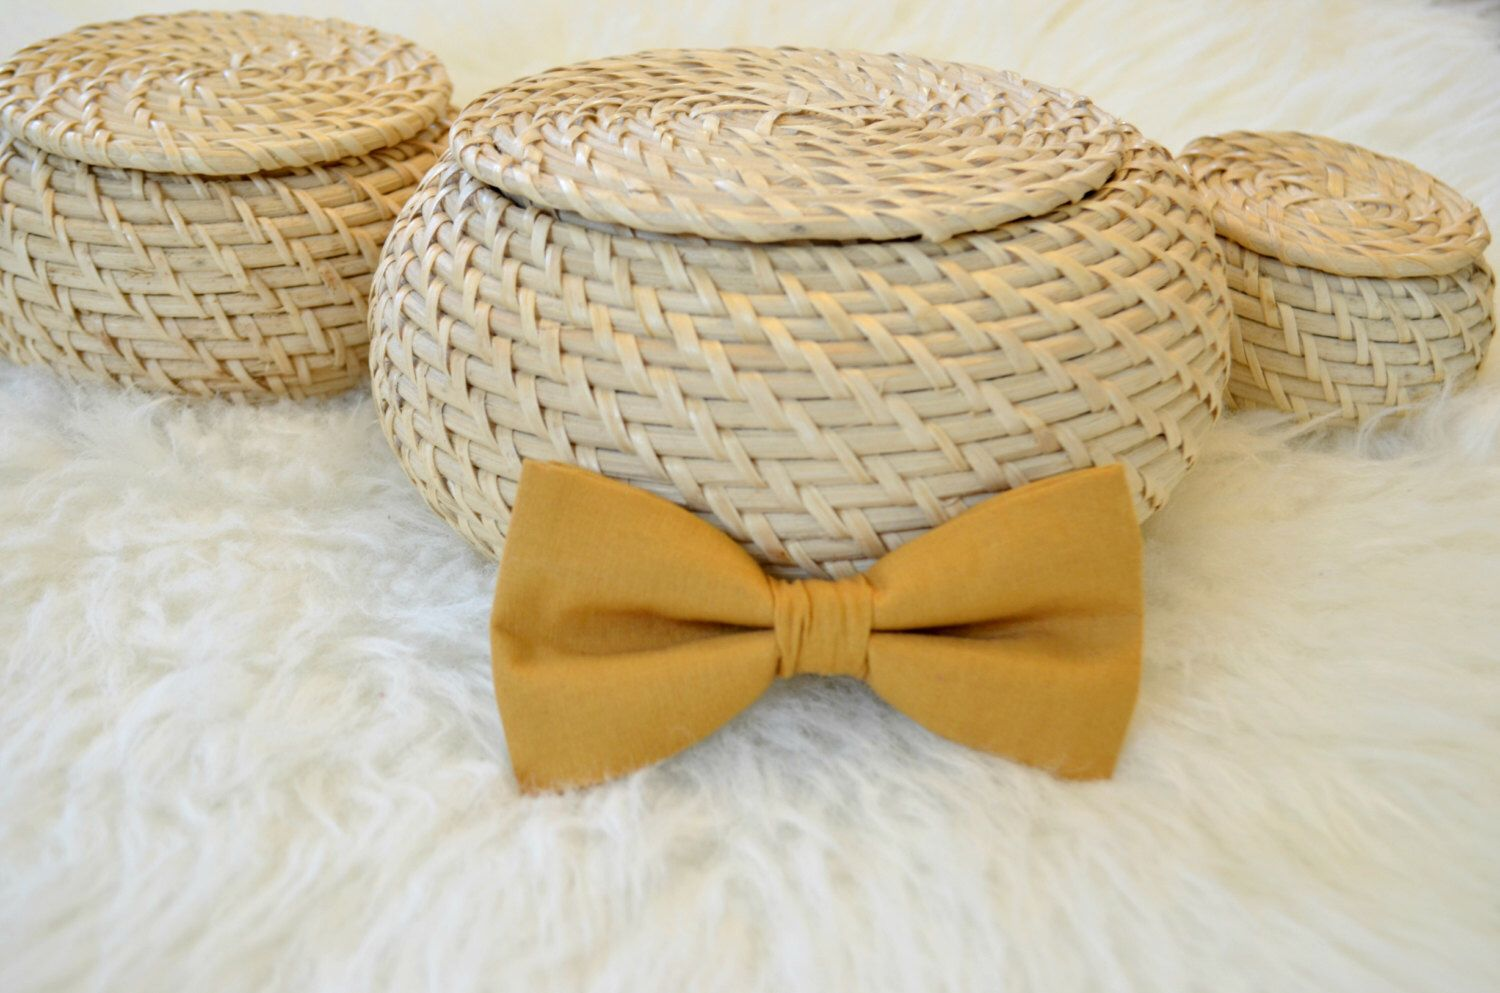 Mustard Bow Ties-Mens Bow Tie-Elegant Bow Tie-Kids Bow Tie-Boys Bow Tie-Bow Ties For Mens-Mustard Yellow Bow Tie by ShardsOfstyle on Etsy https://www.etsy.com/listing/294336243/mustard-bow-ties-mens-bow-tie-elegant